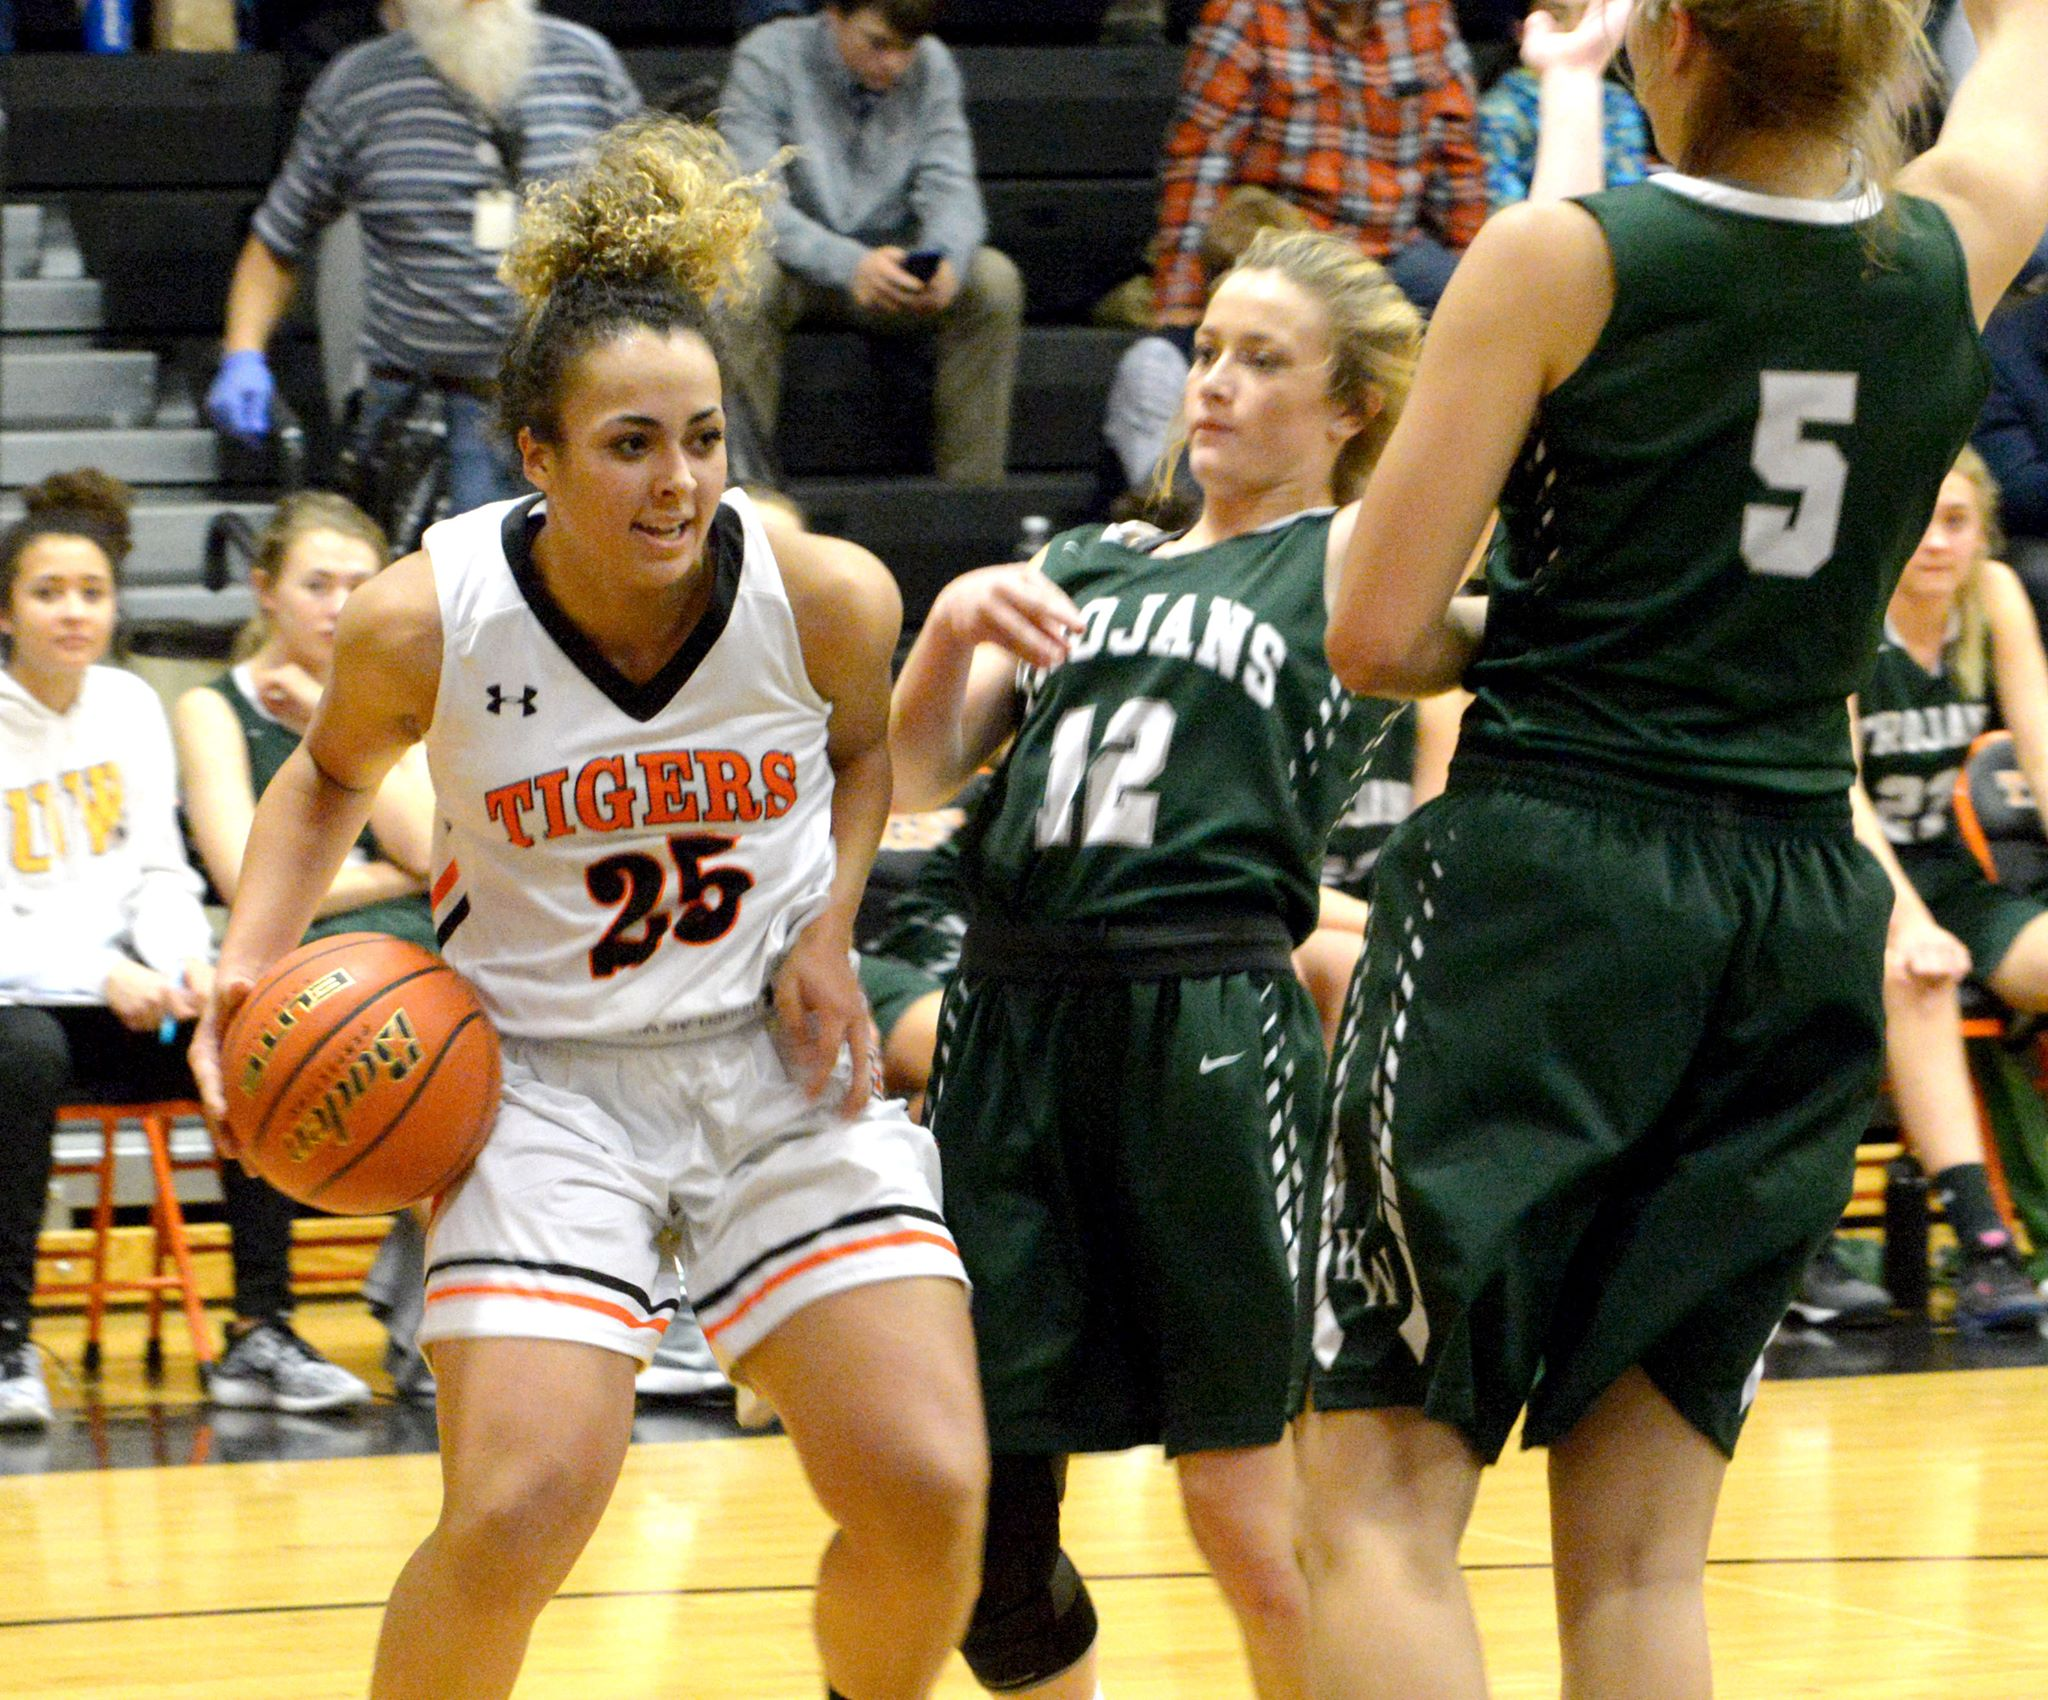 Girls High School Basketball Standings and Weekend Scores